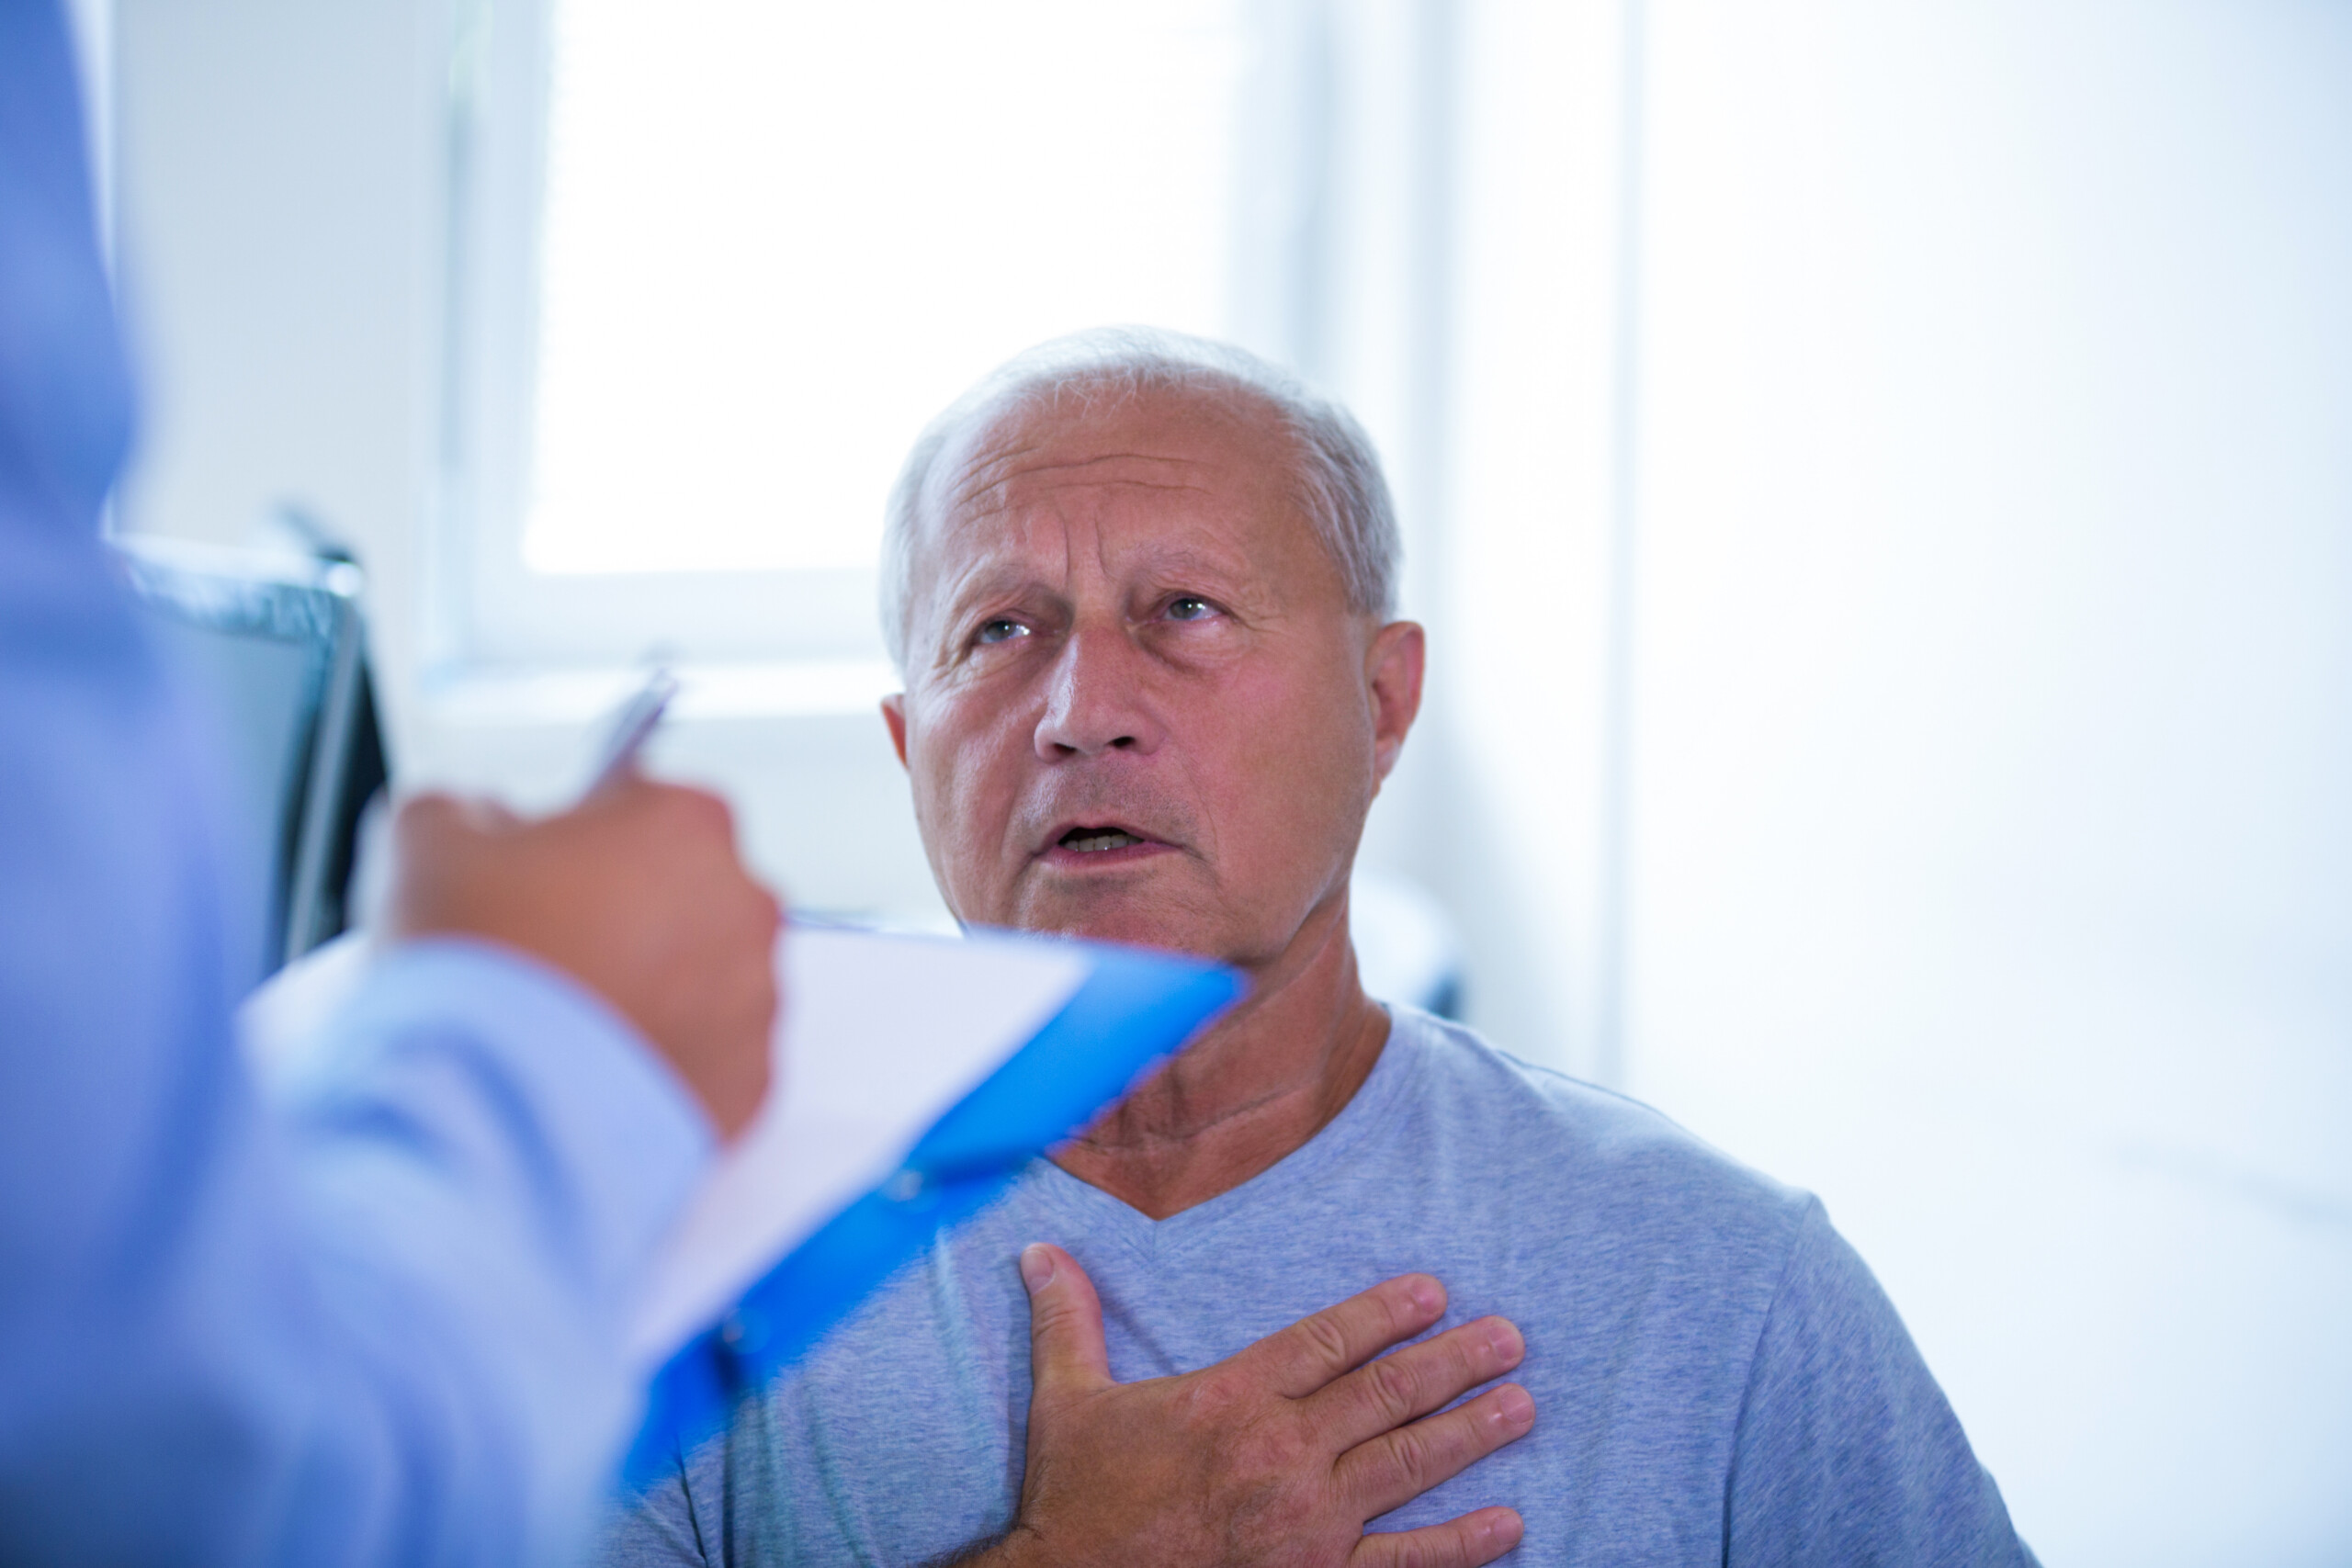 Chest Pain from Lung Cancer vs. Heart Disease: Comparison